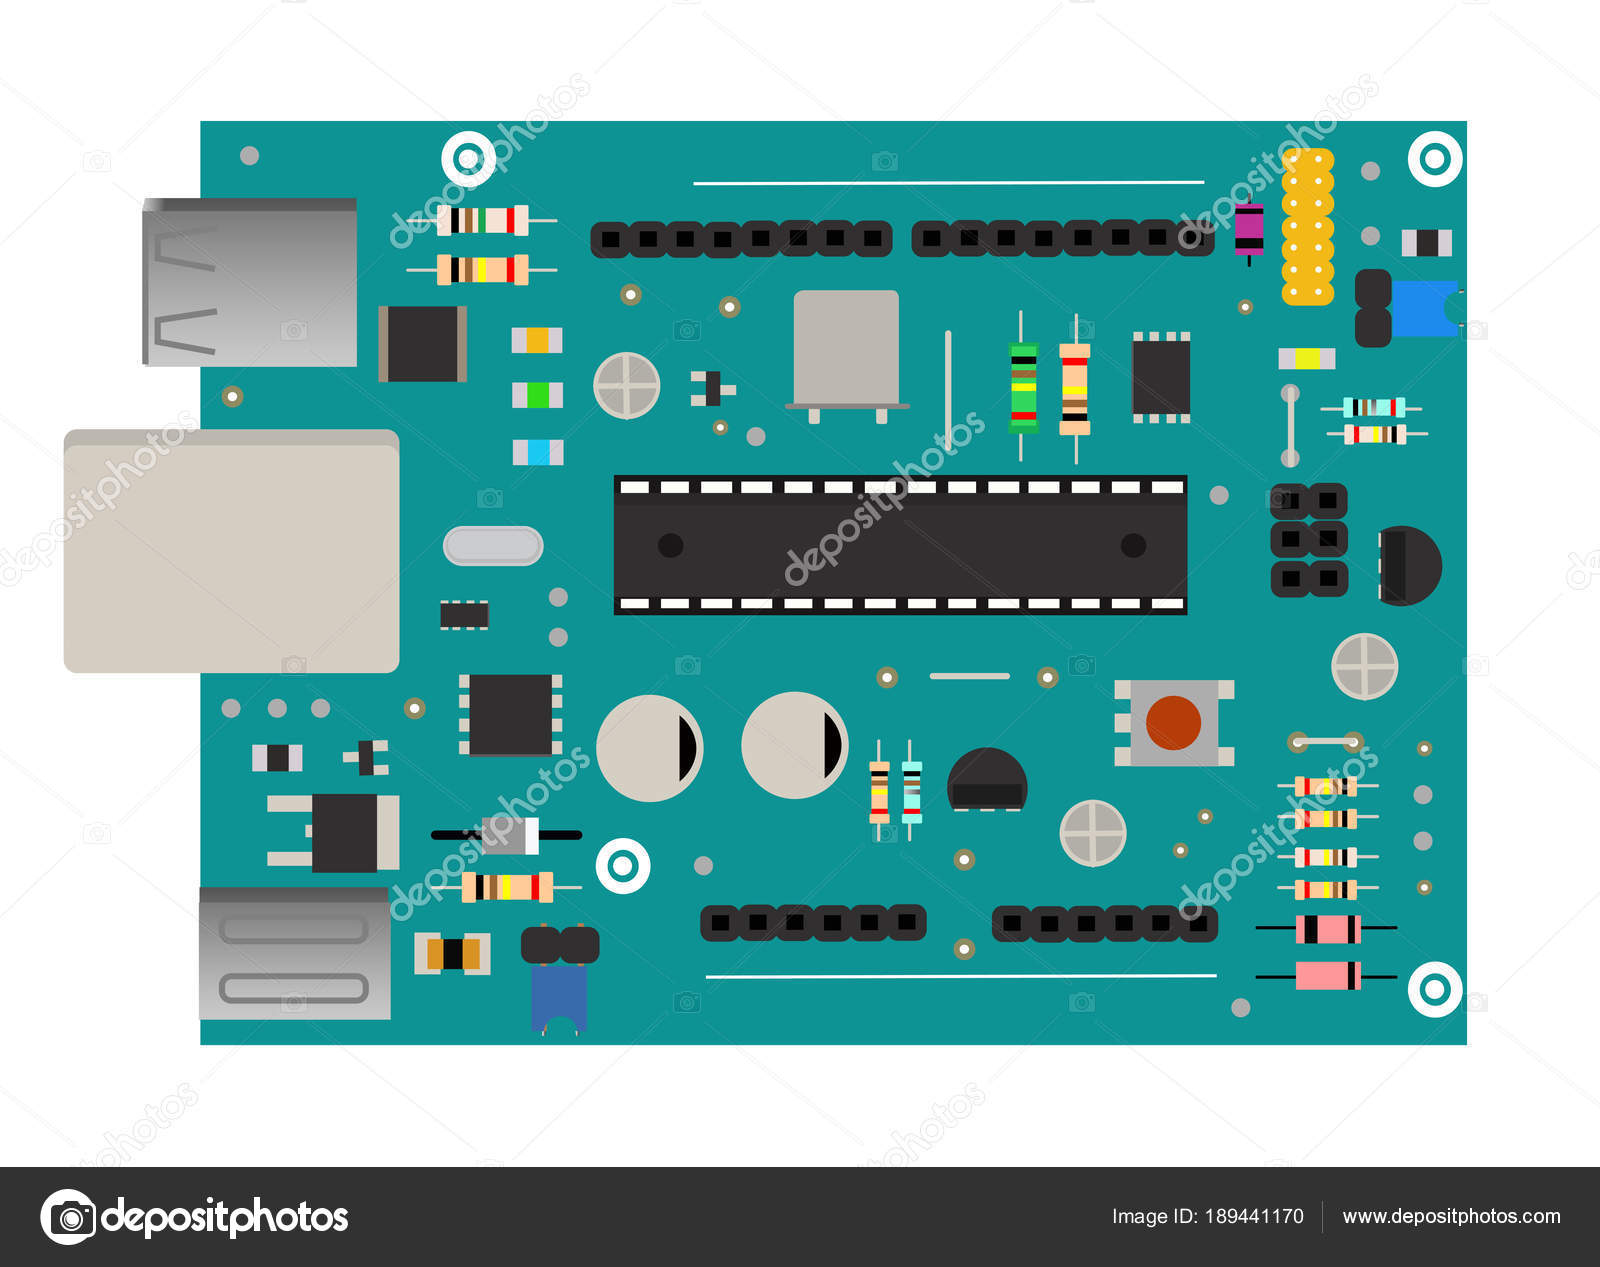 DIY electronic mega board with a microprocessor, interfaces, LEDs ...